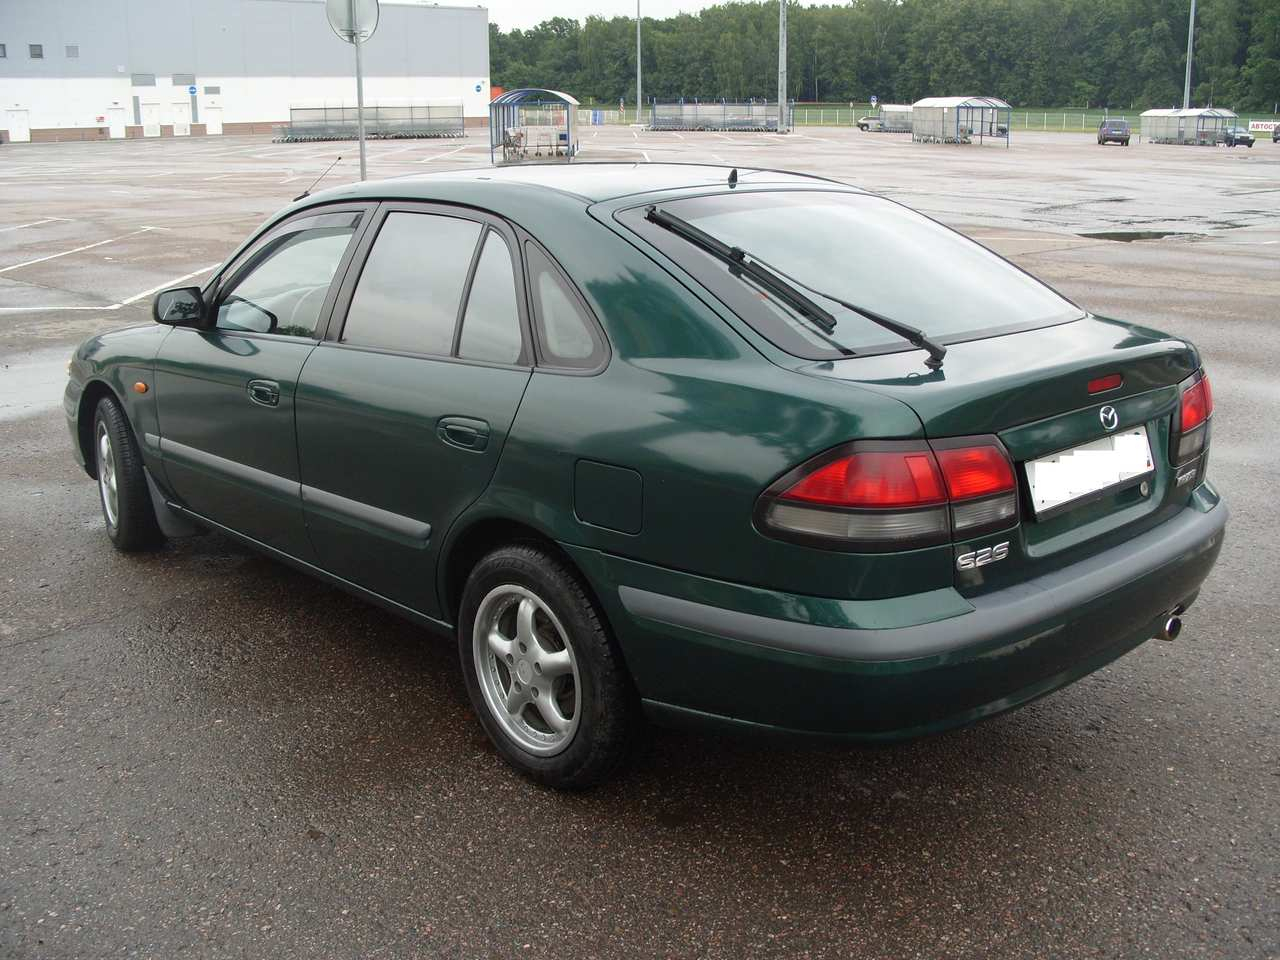 1999 Mazda 626 Specs Engine Size 2 0 Fuel Type Gasoline Drive Wheels Ff Transmission Gearbox Automatic